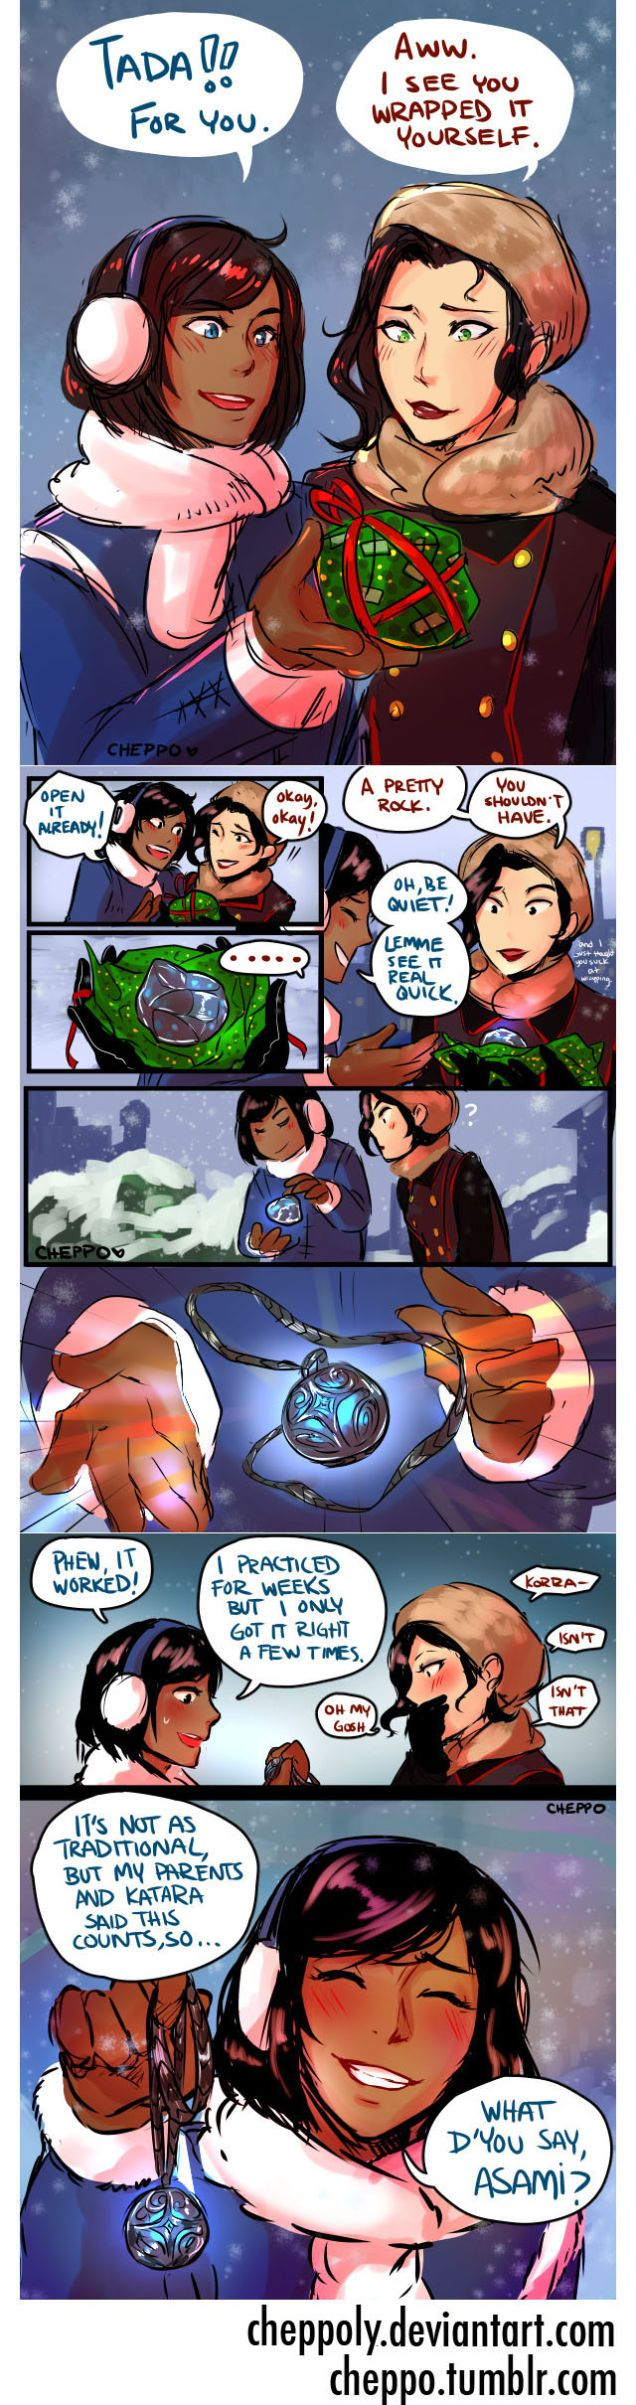 Longing For More Korra & Asami? Fan Comics Picture Life After The Show